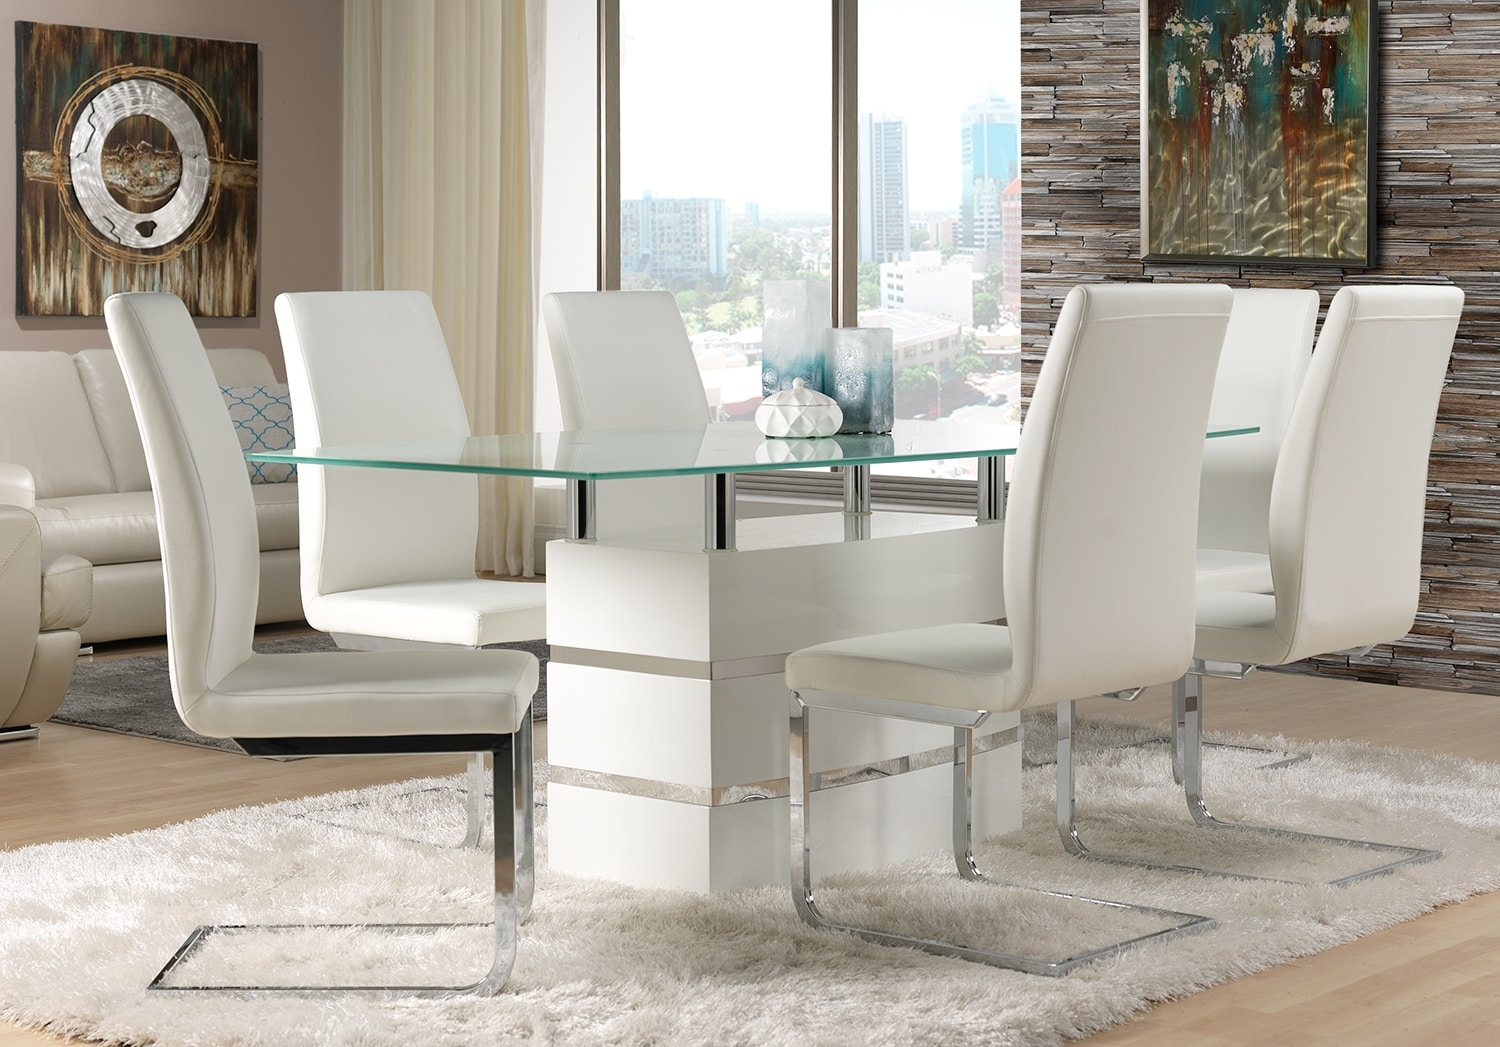 Dining Room Furniture - Altair 7-Piece Dining Room Set - White